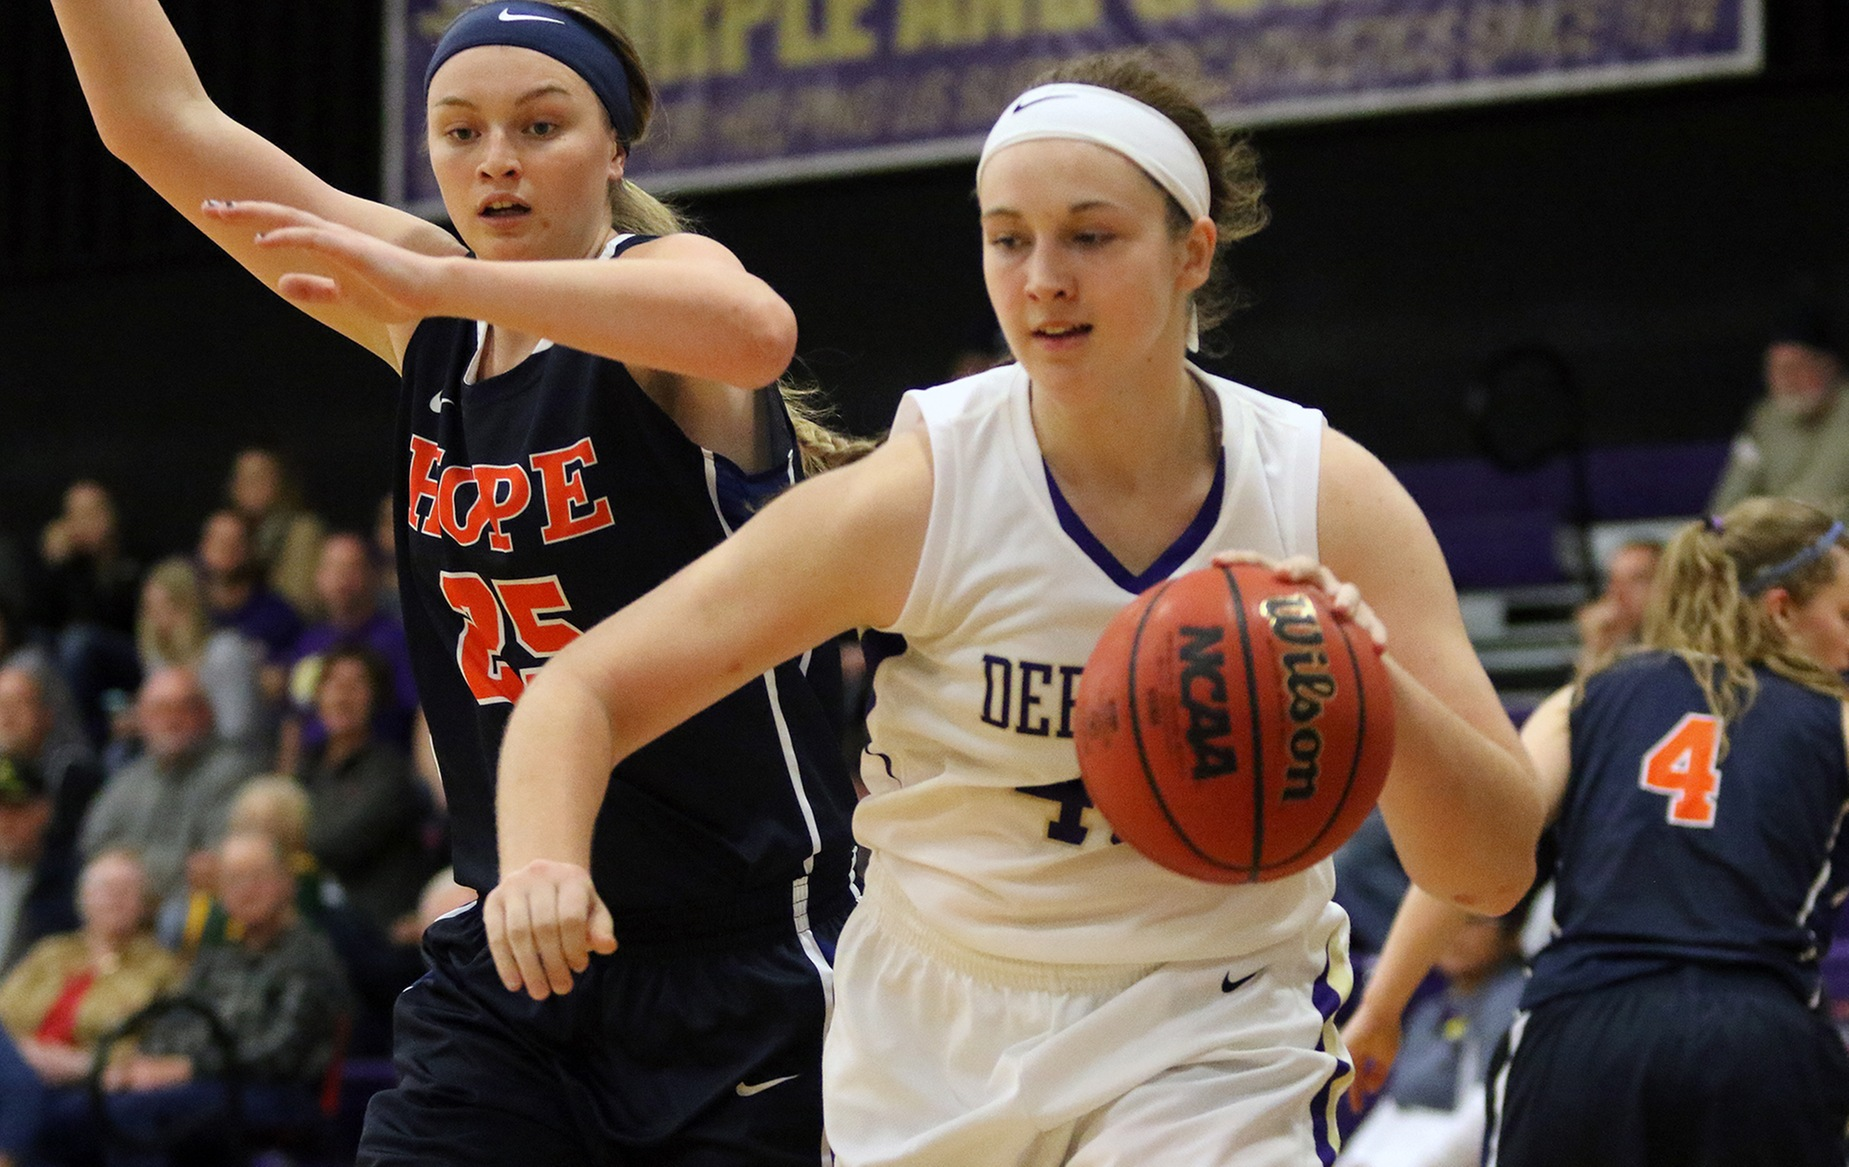 Defiance Dominates in Victory Against MSJ